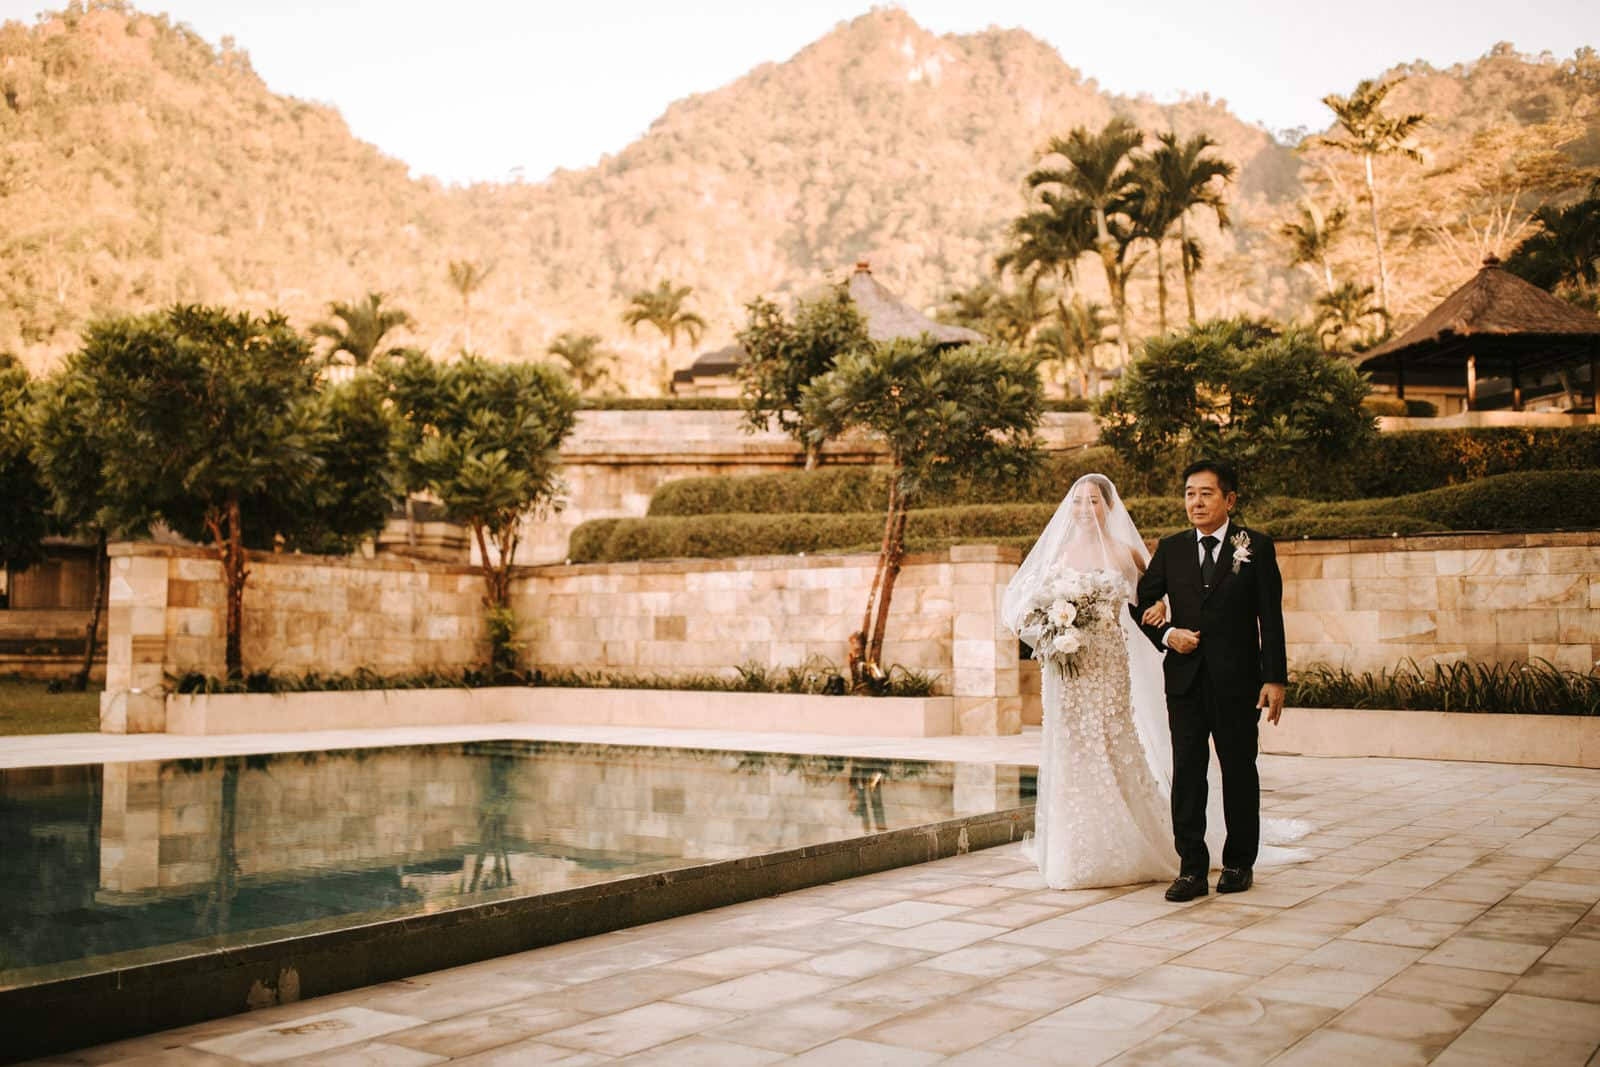 The bride and her father are walking along the pool.